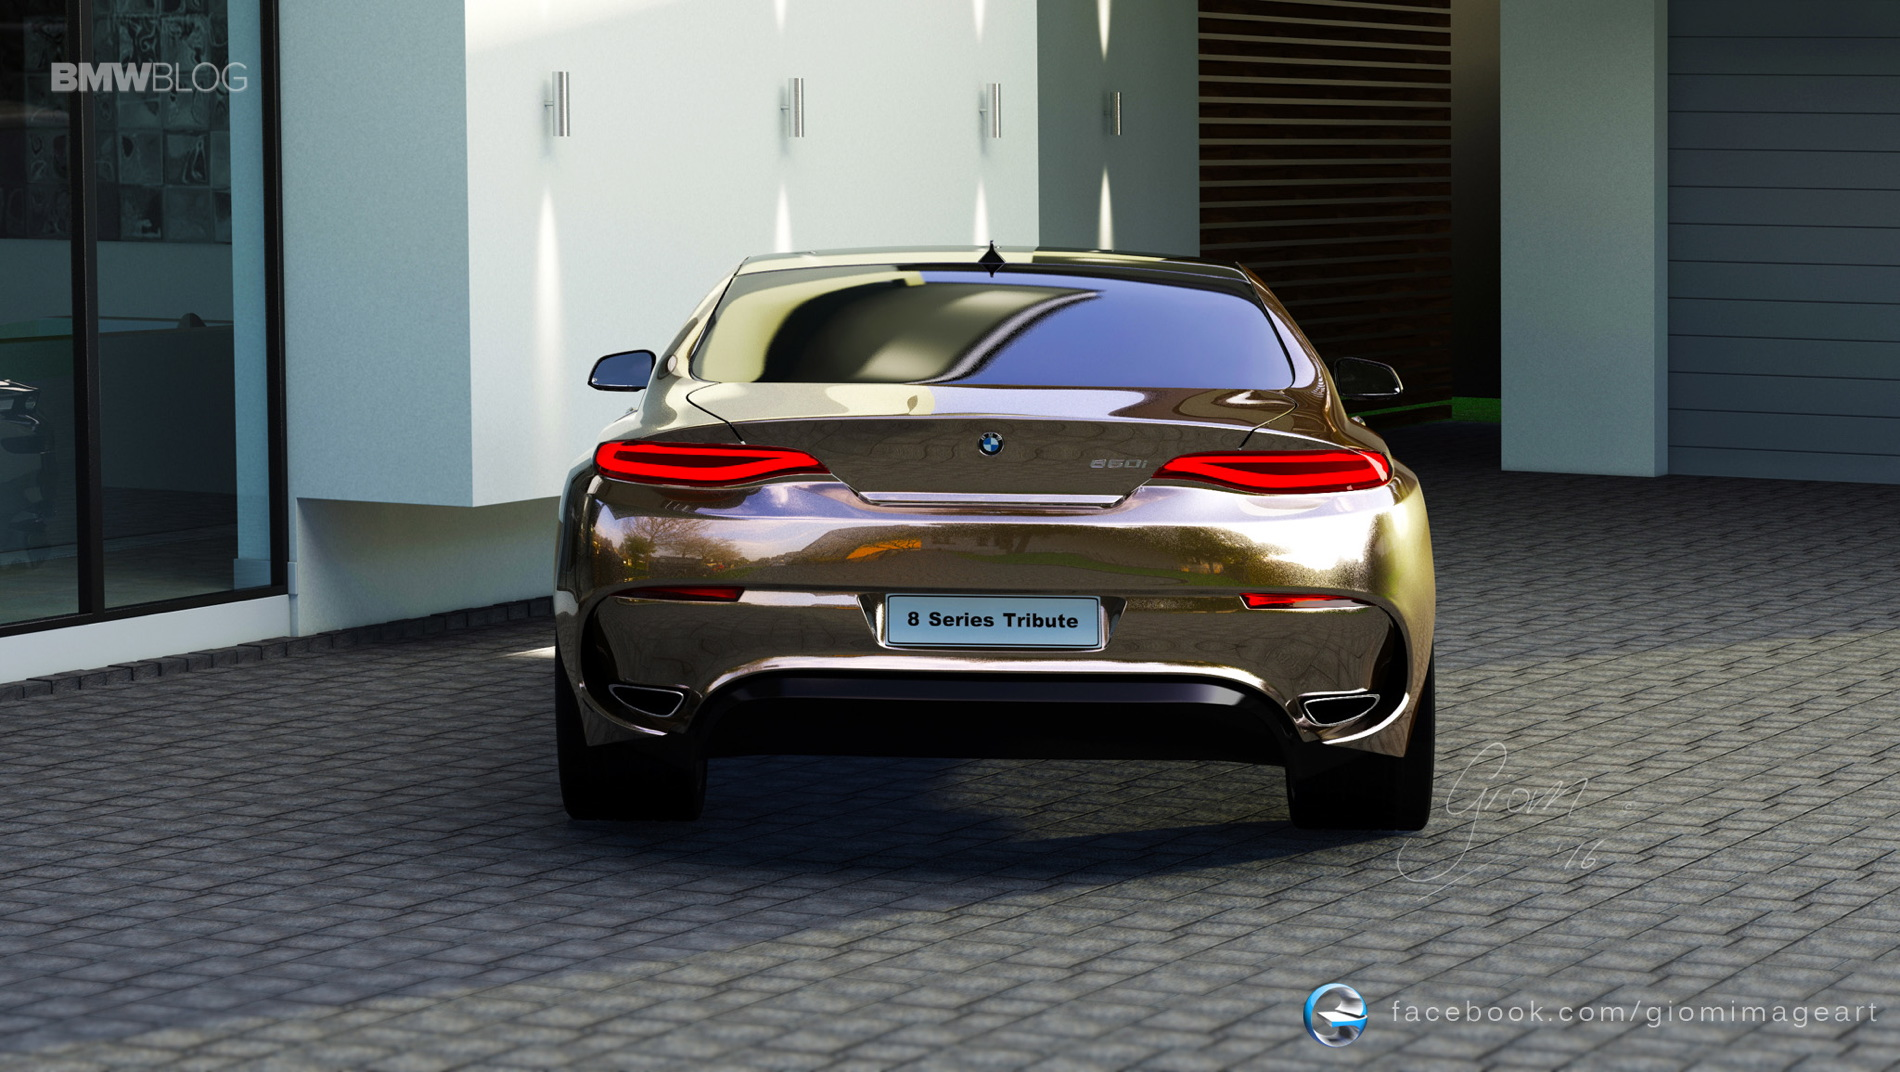 BMW 8 Series rendering tribute 1